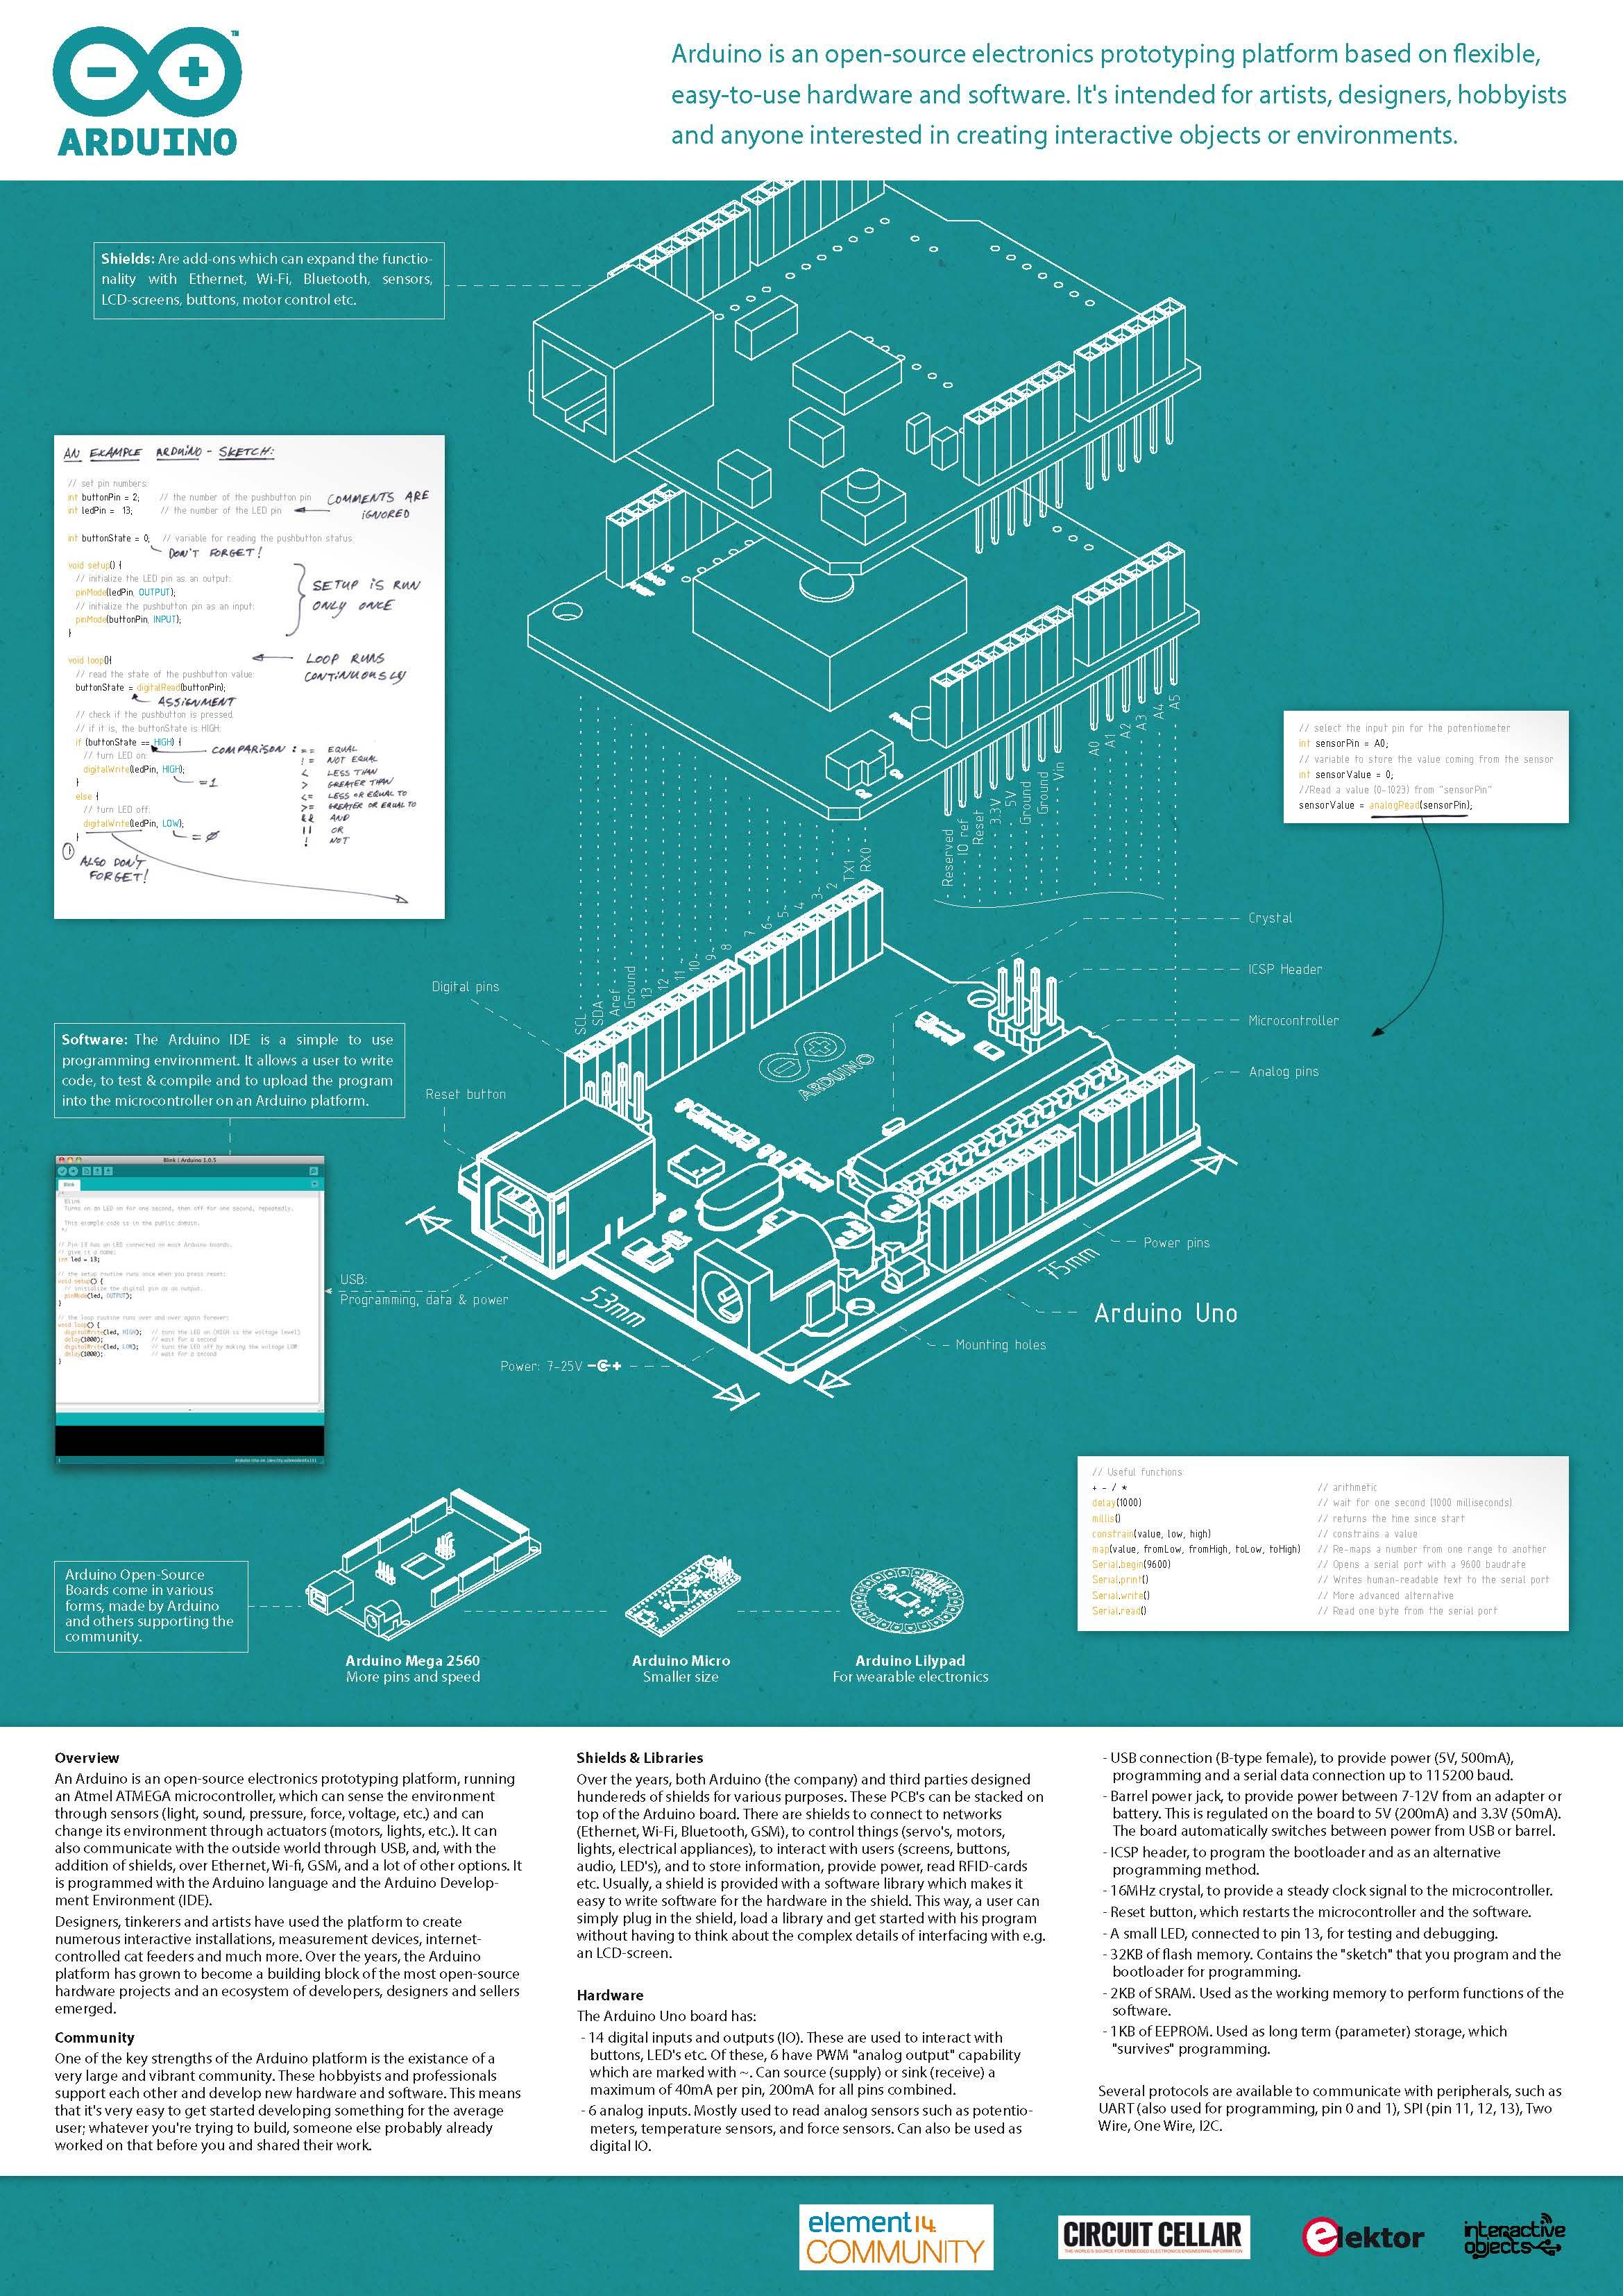 Arduino uno blueprint poster free download element14 arduino uno blueprint poster free download element14 malvernweather Images